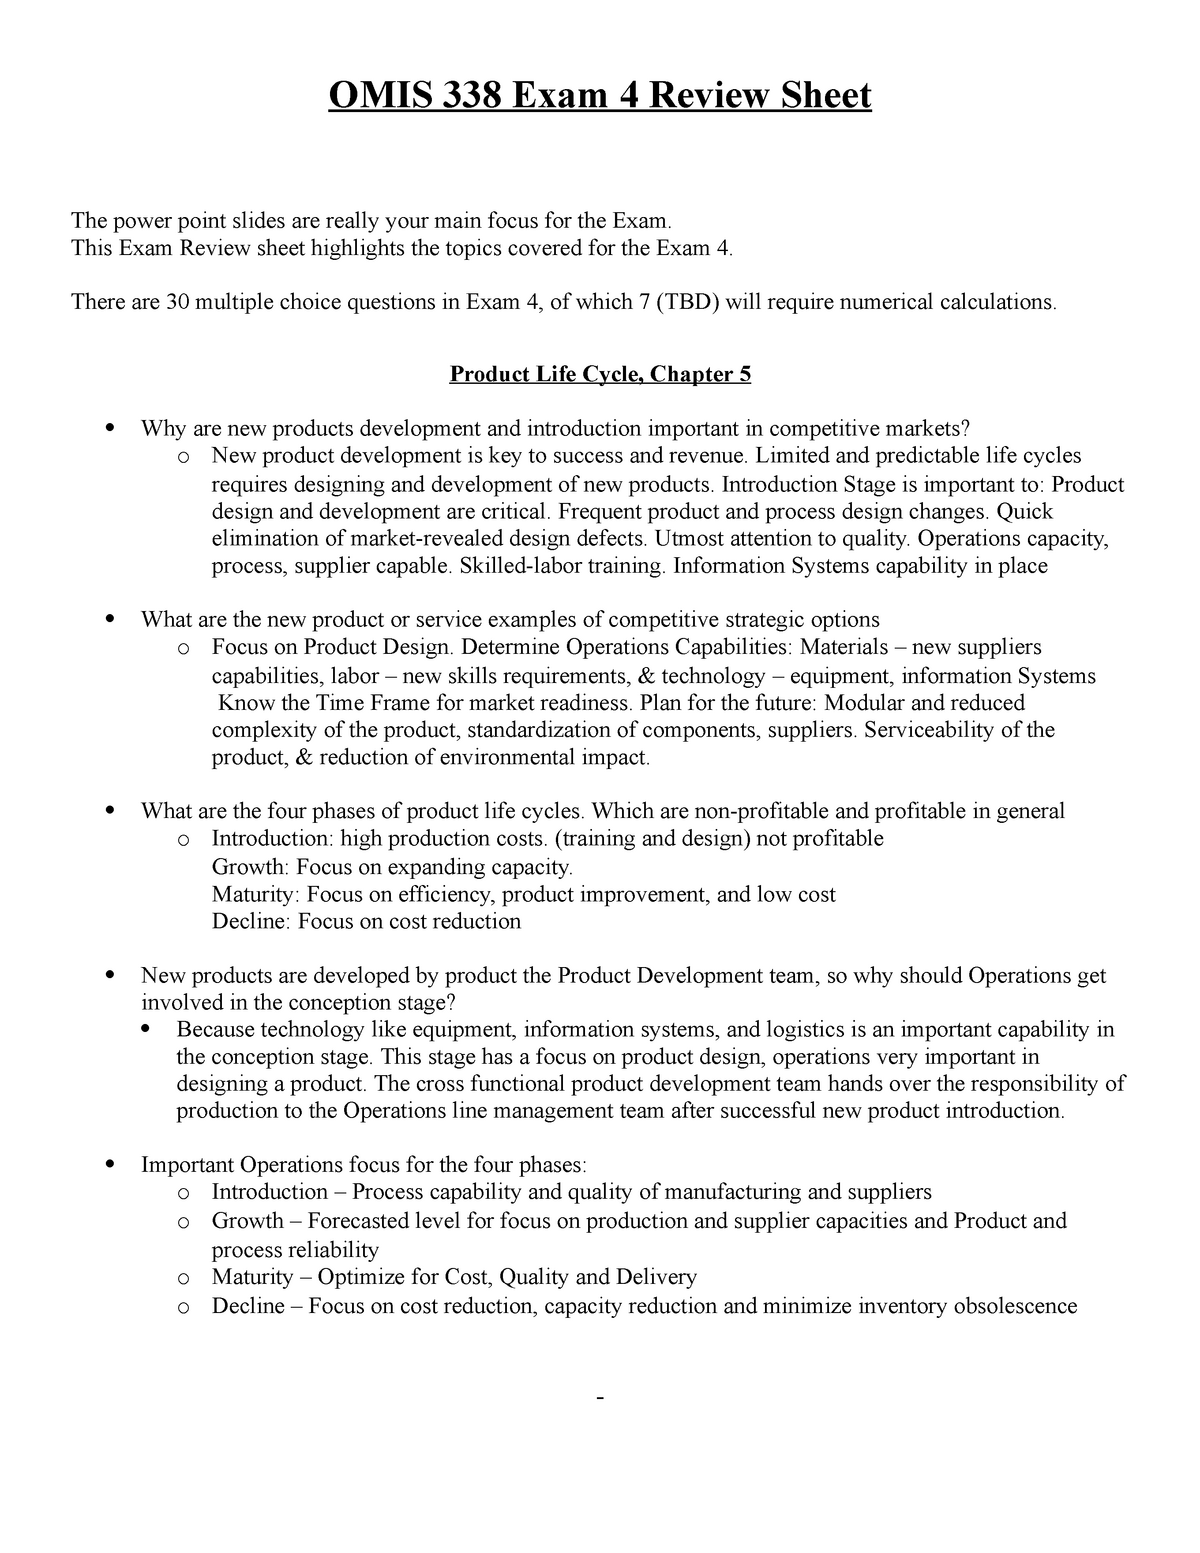 Exam 4 Review Sheet - Study guide detailed answers to exam 4